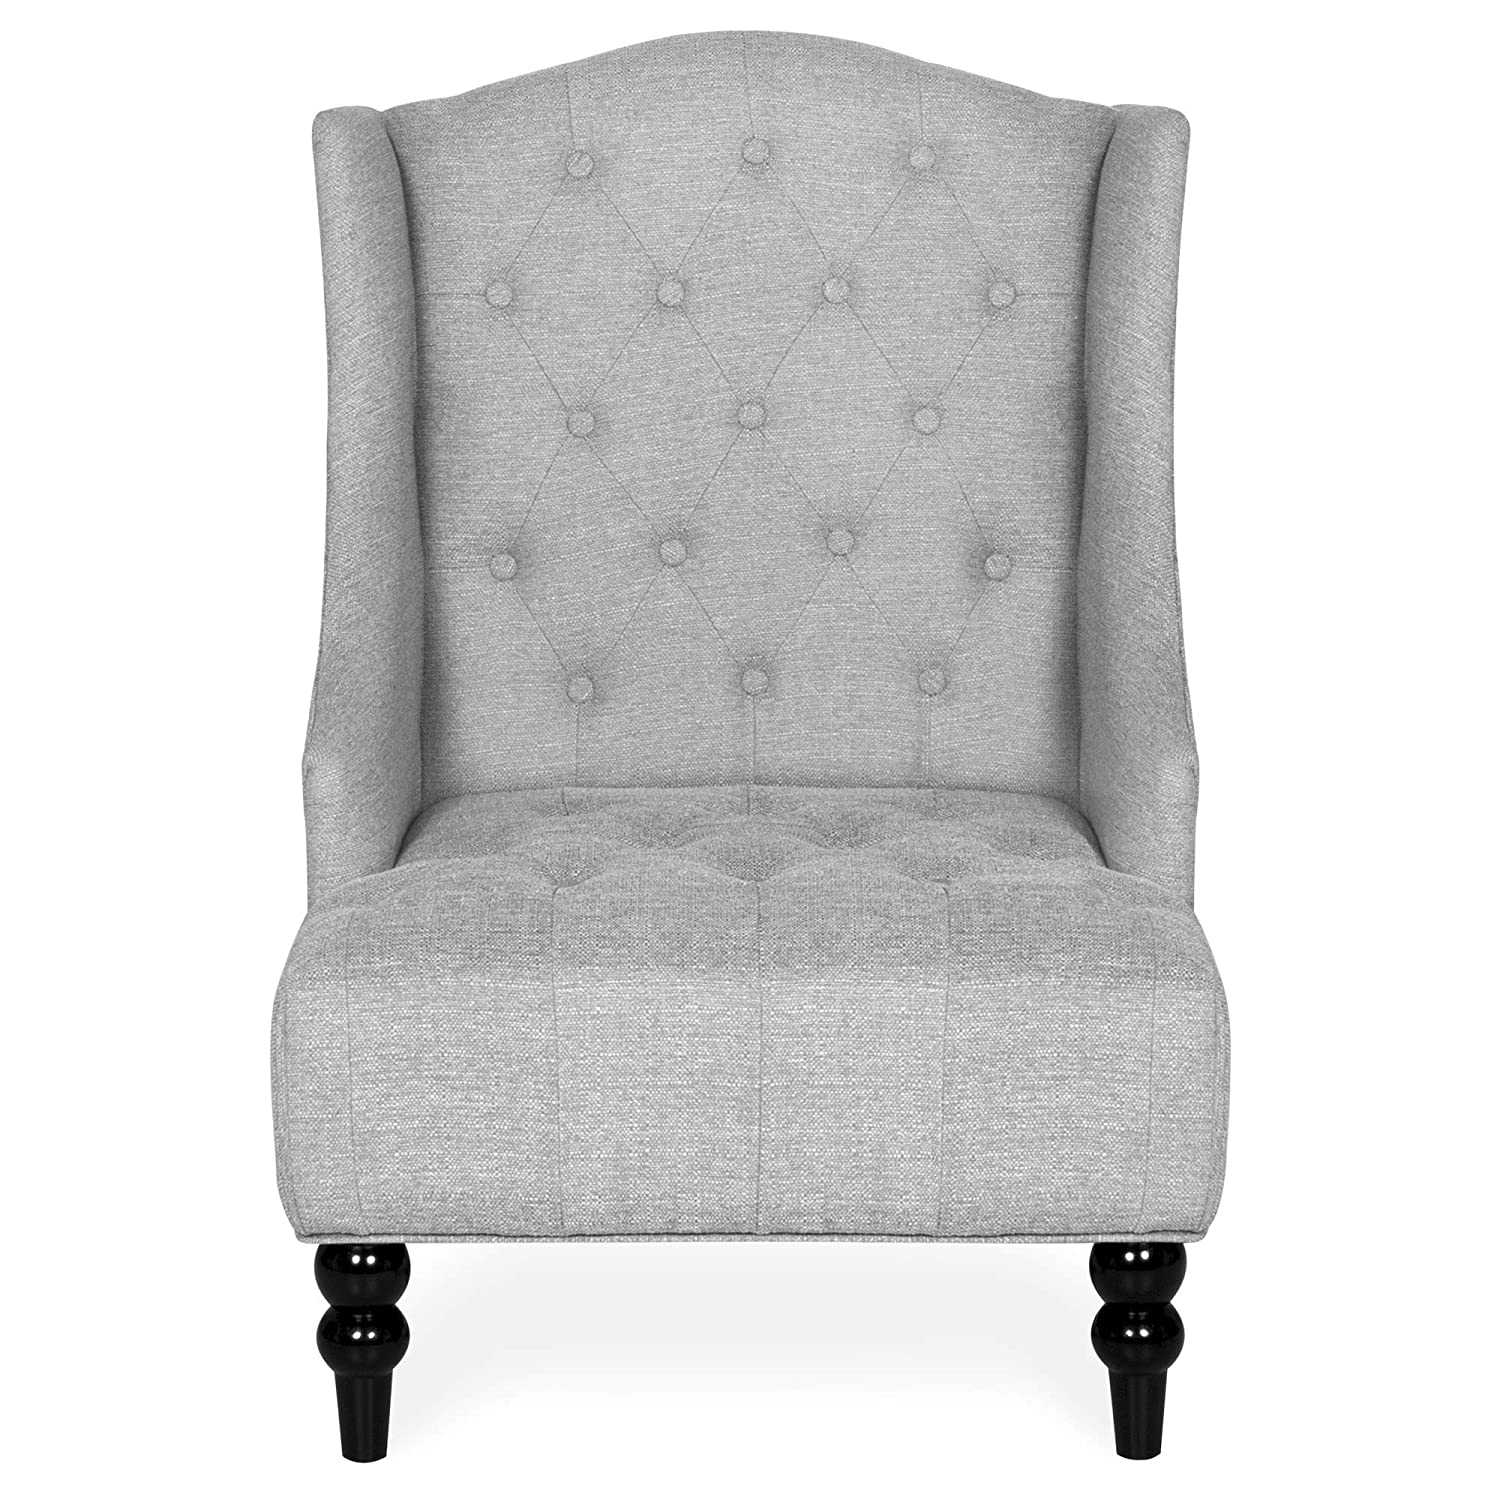 Amazon.com: Best Choice Products Tall Wingback Tufted Fabric Accent Chair    Gray: Kitchen U0026 Dining